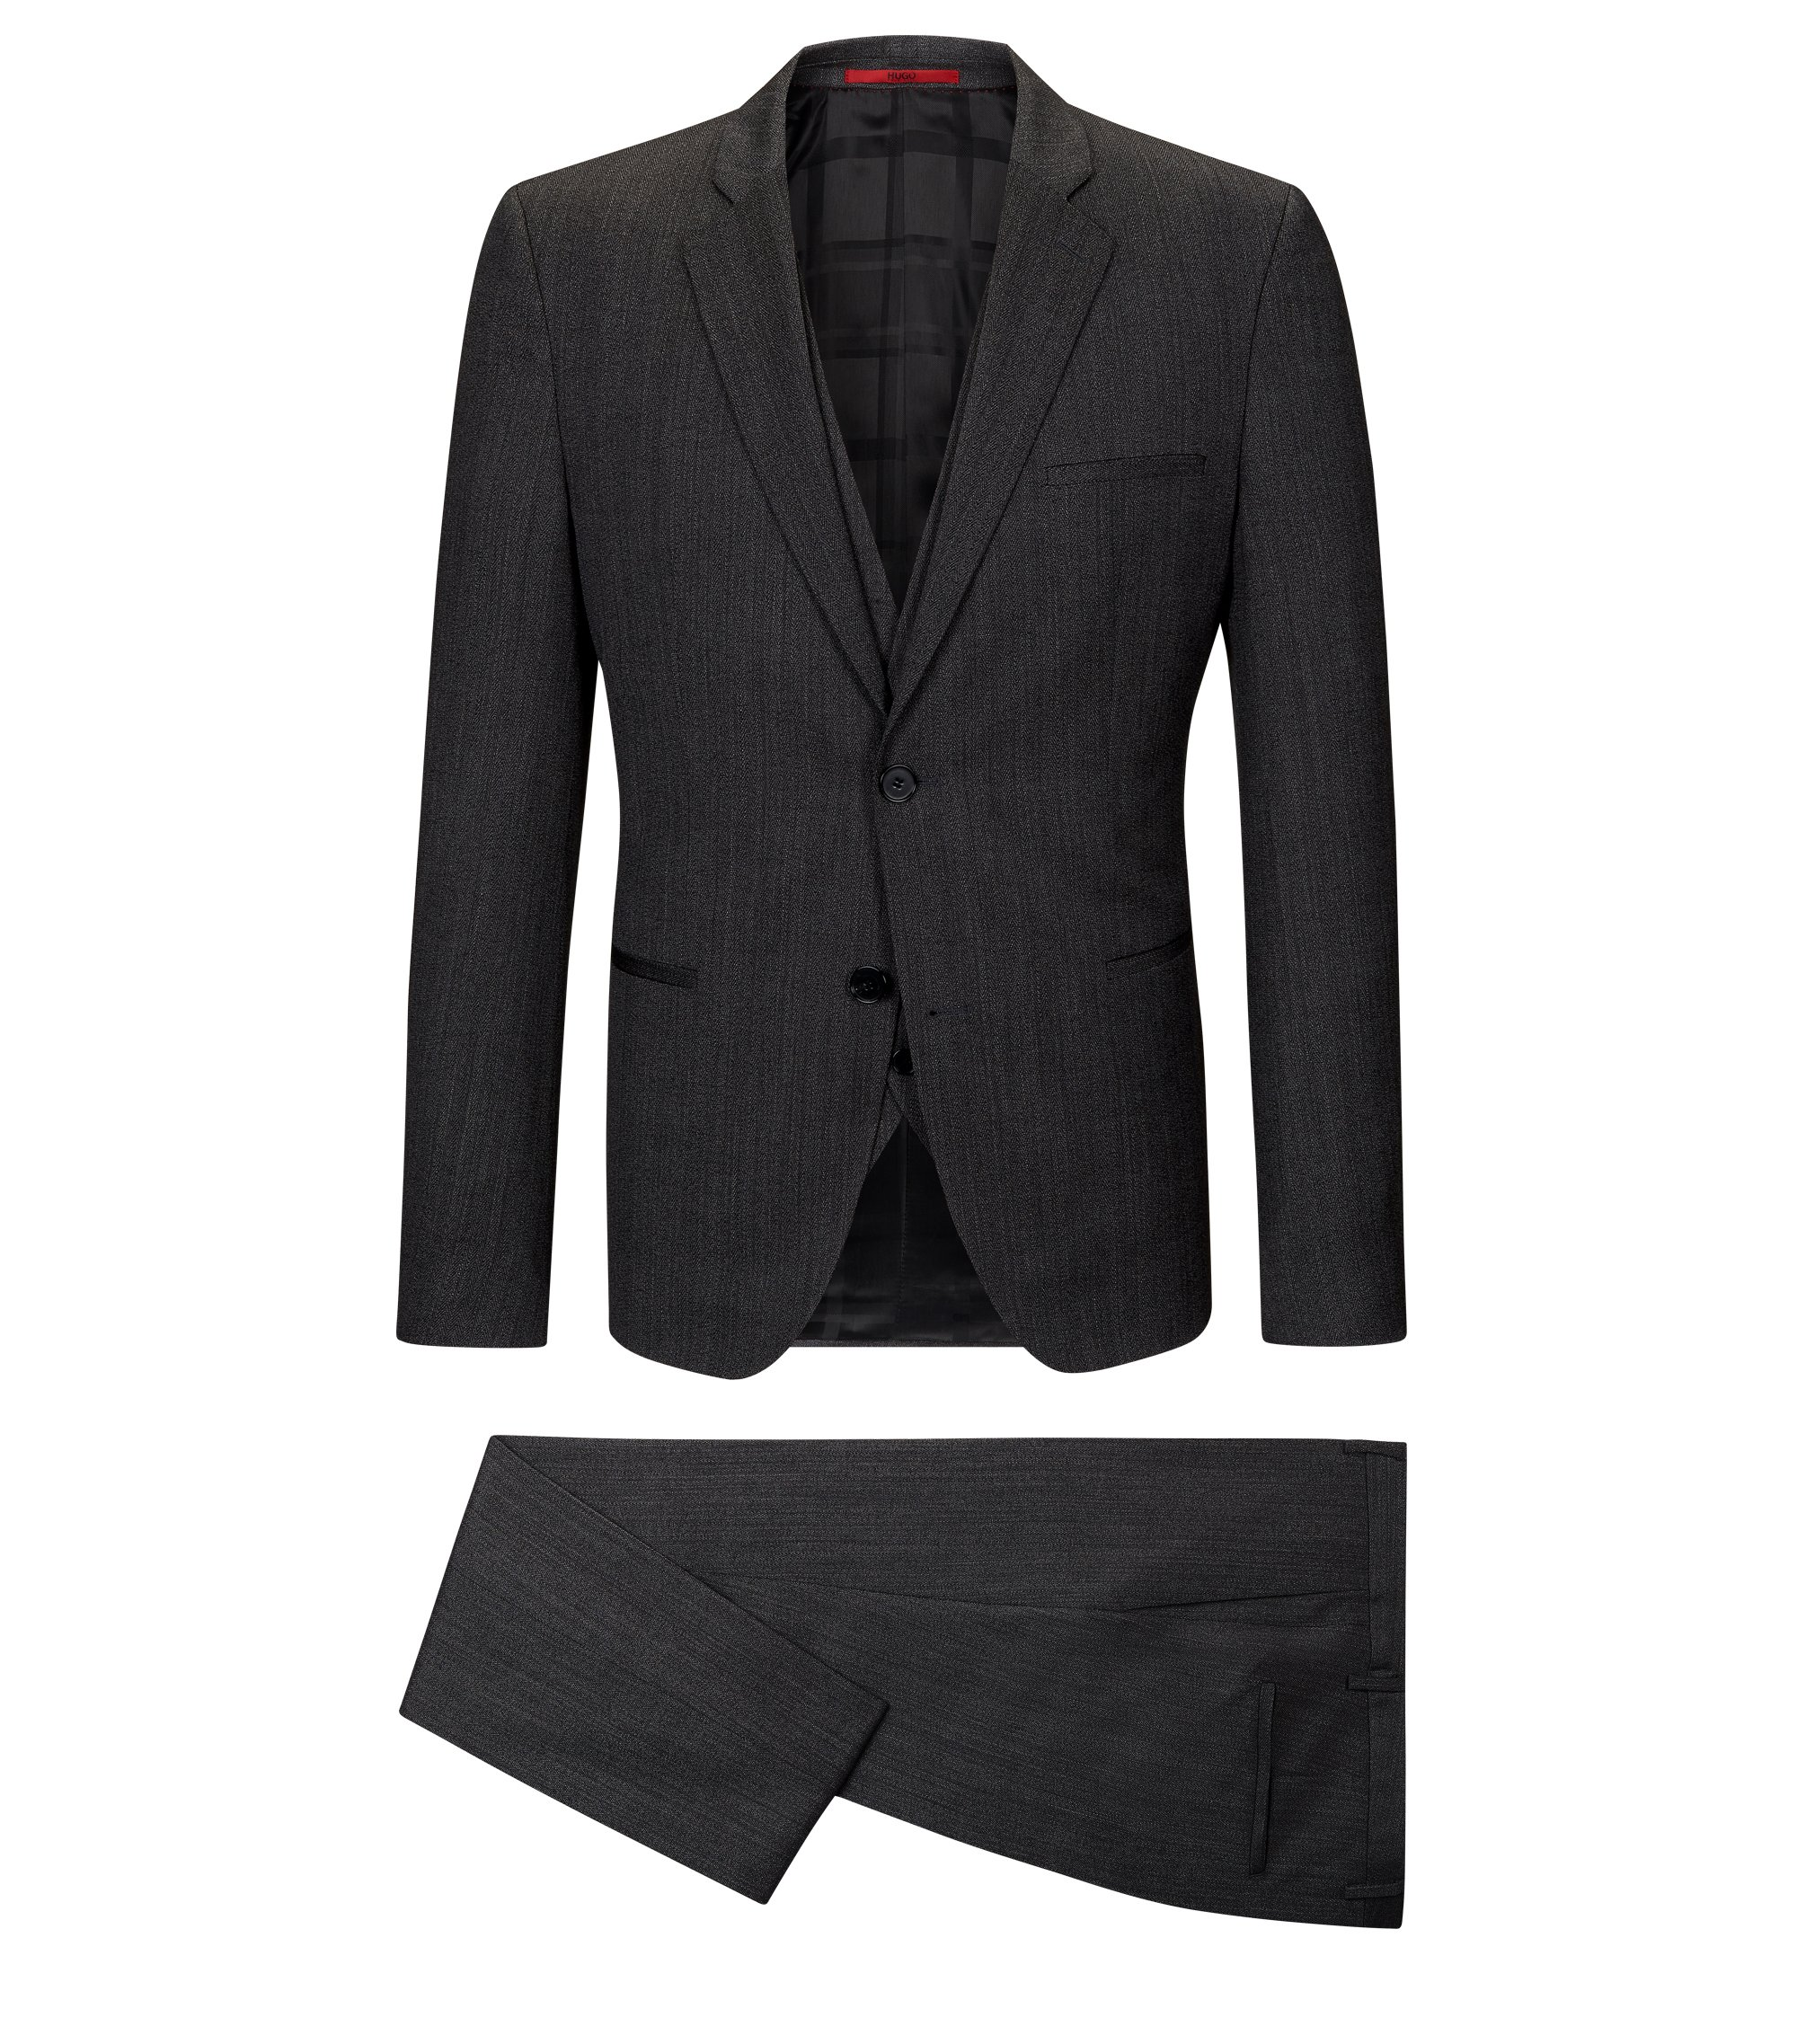 Herringbone Virgin Wool 3-Piece Suit, Extra Slim Fit | Arnin/Wilardo/Hermin, Open Grey